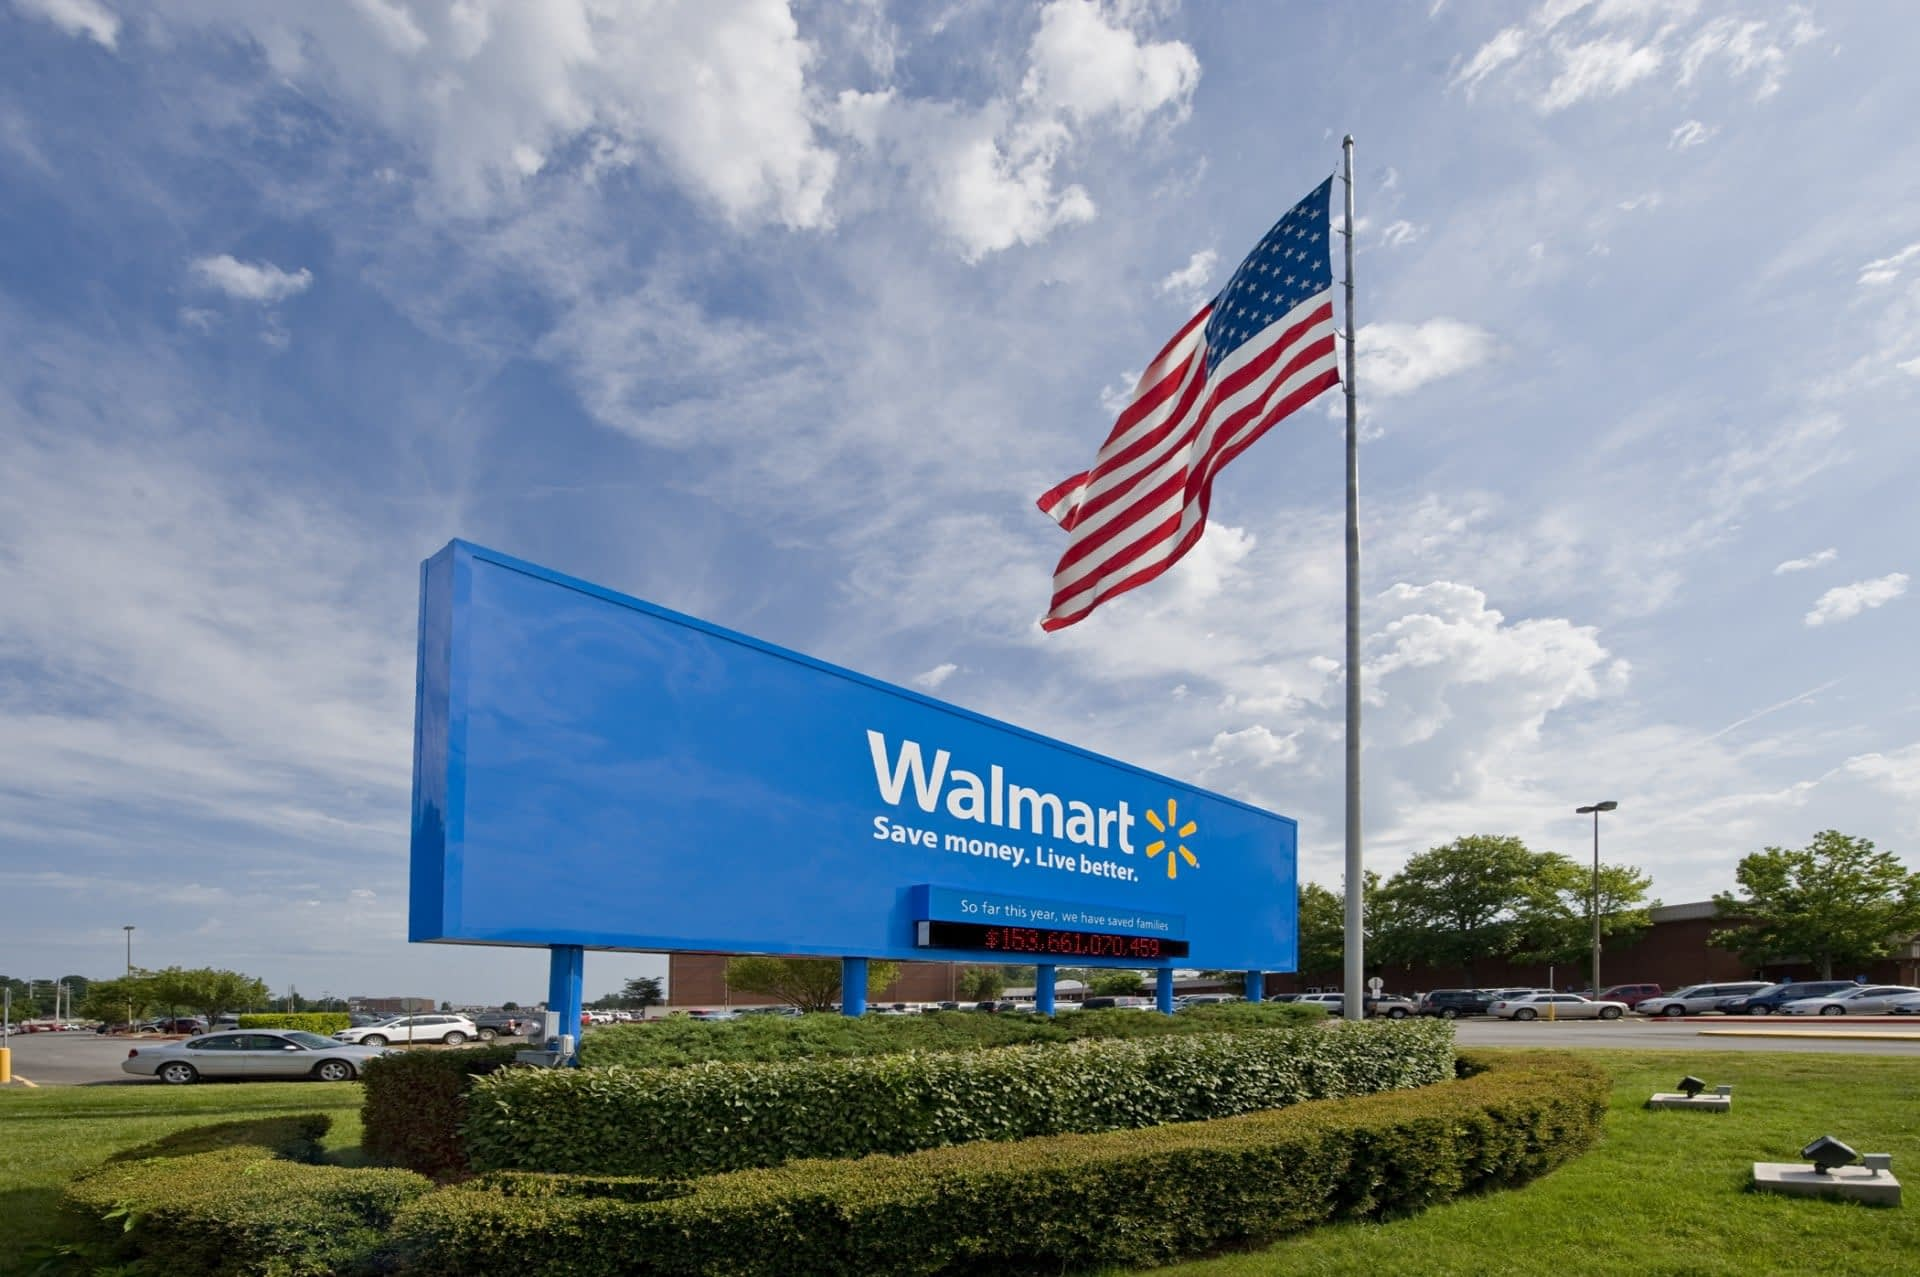 Walmart to Issue Stable Coin